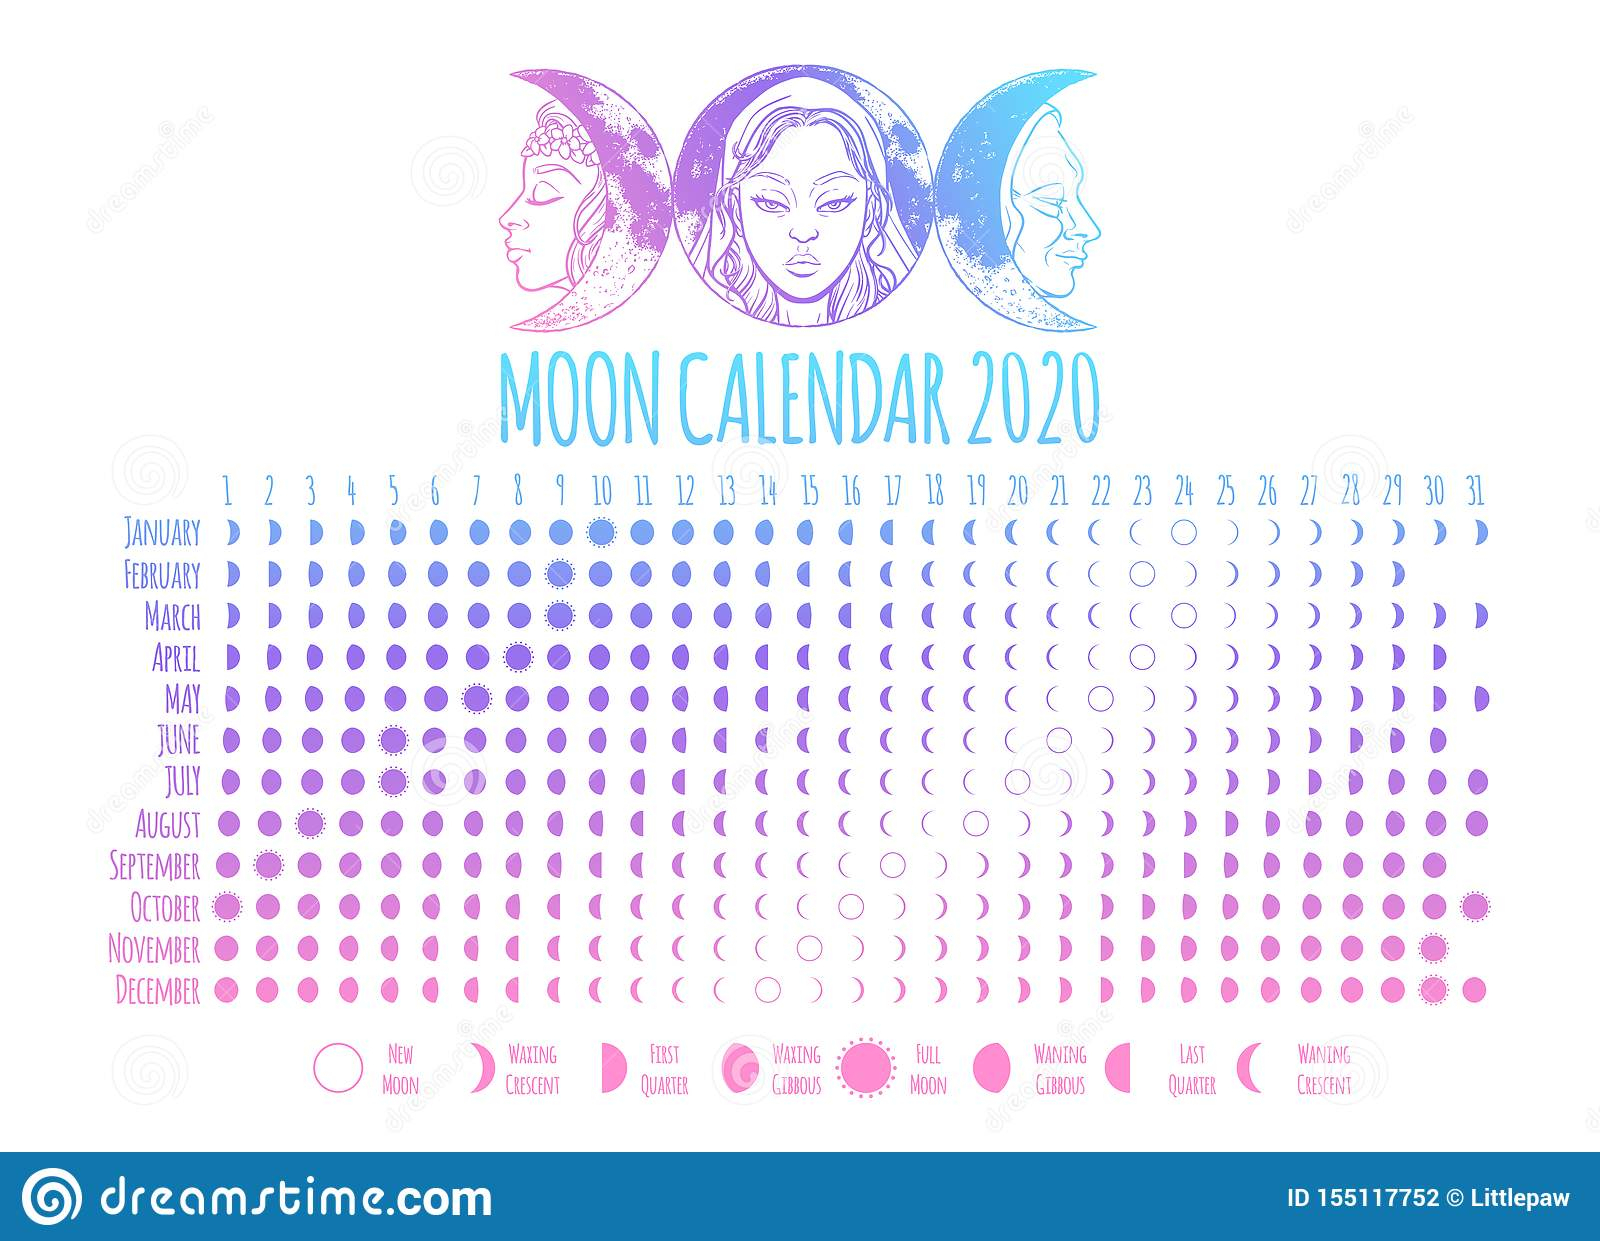 Moon Calendar, 2020 Year, Lunar Phases, Cycles. Design intended for Lunar Calendar October 2020